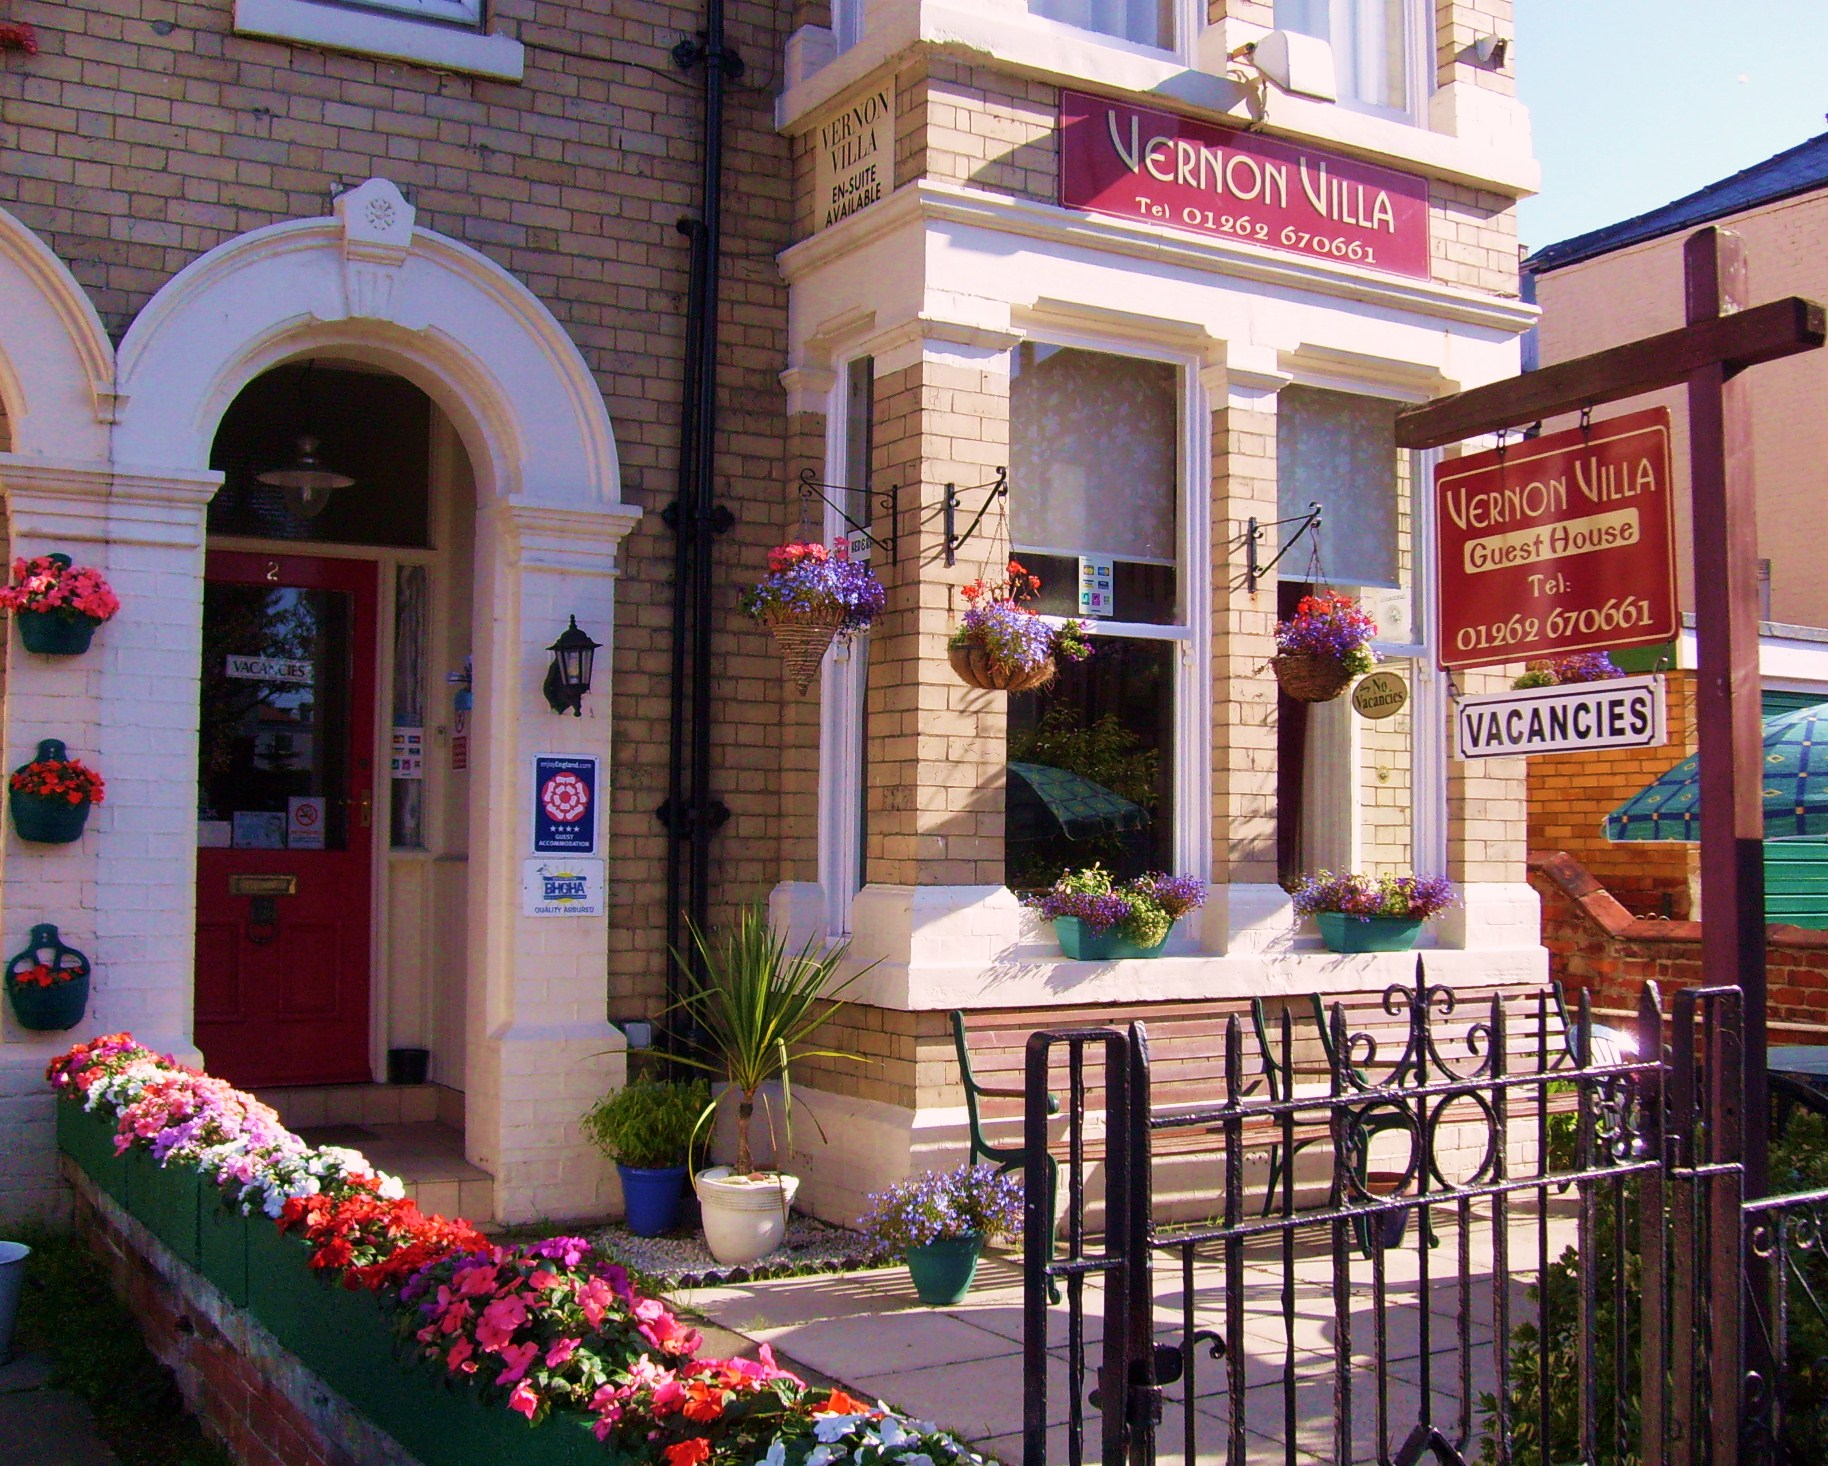 Vernon villa guest house bridlington bed and breakfast b b for Bed and breakfast home